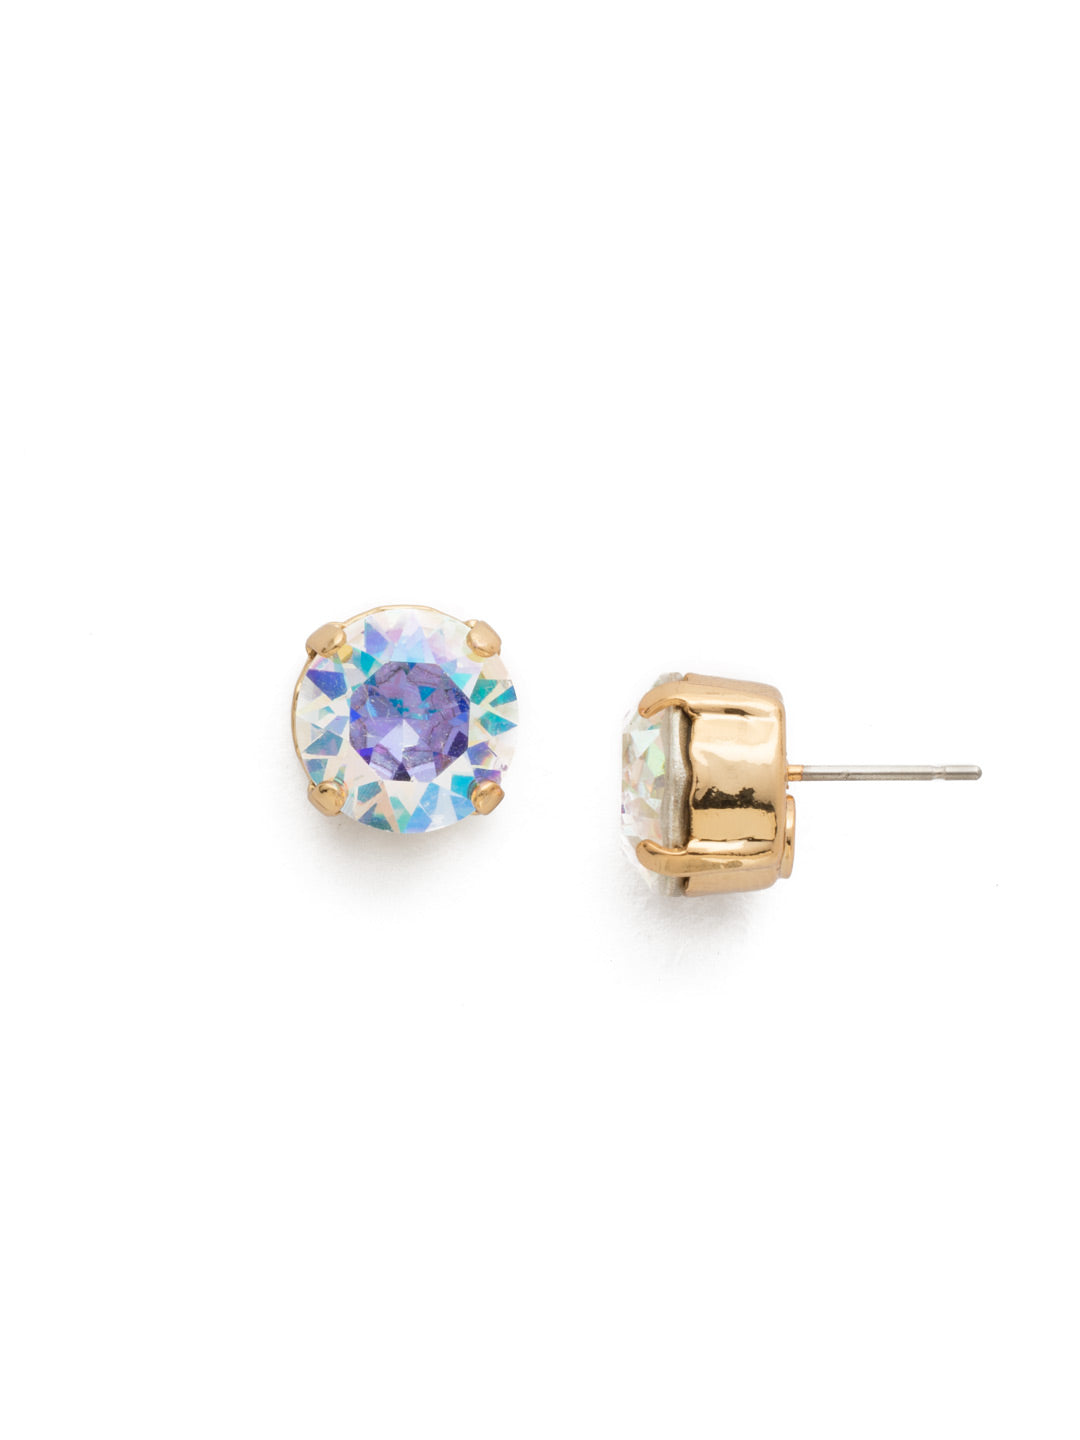 Round Crystal Stud Earrings - ECM14BGCAB